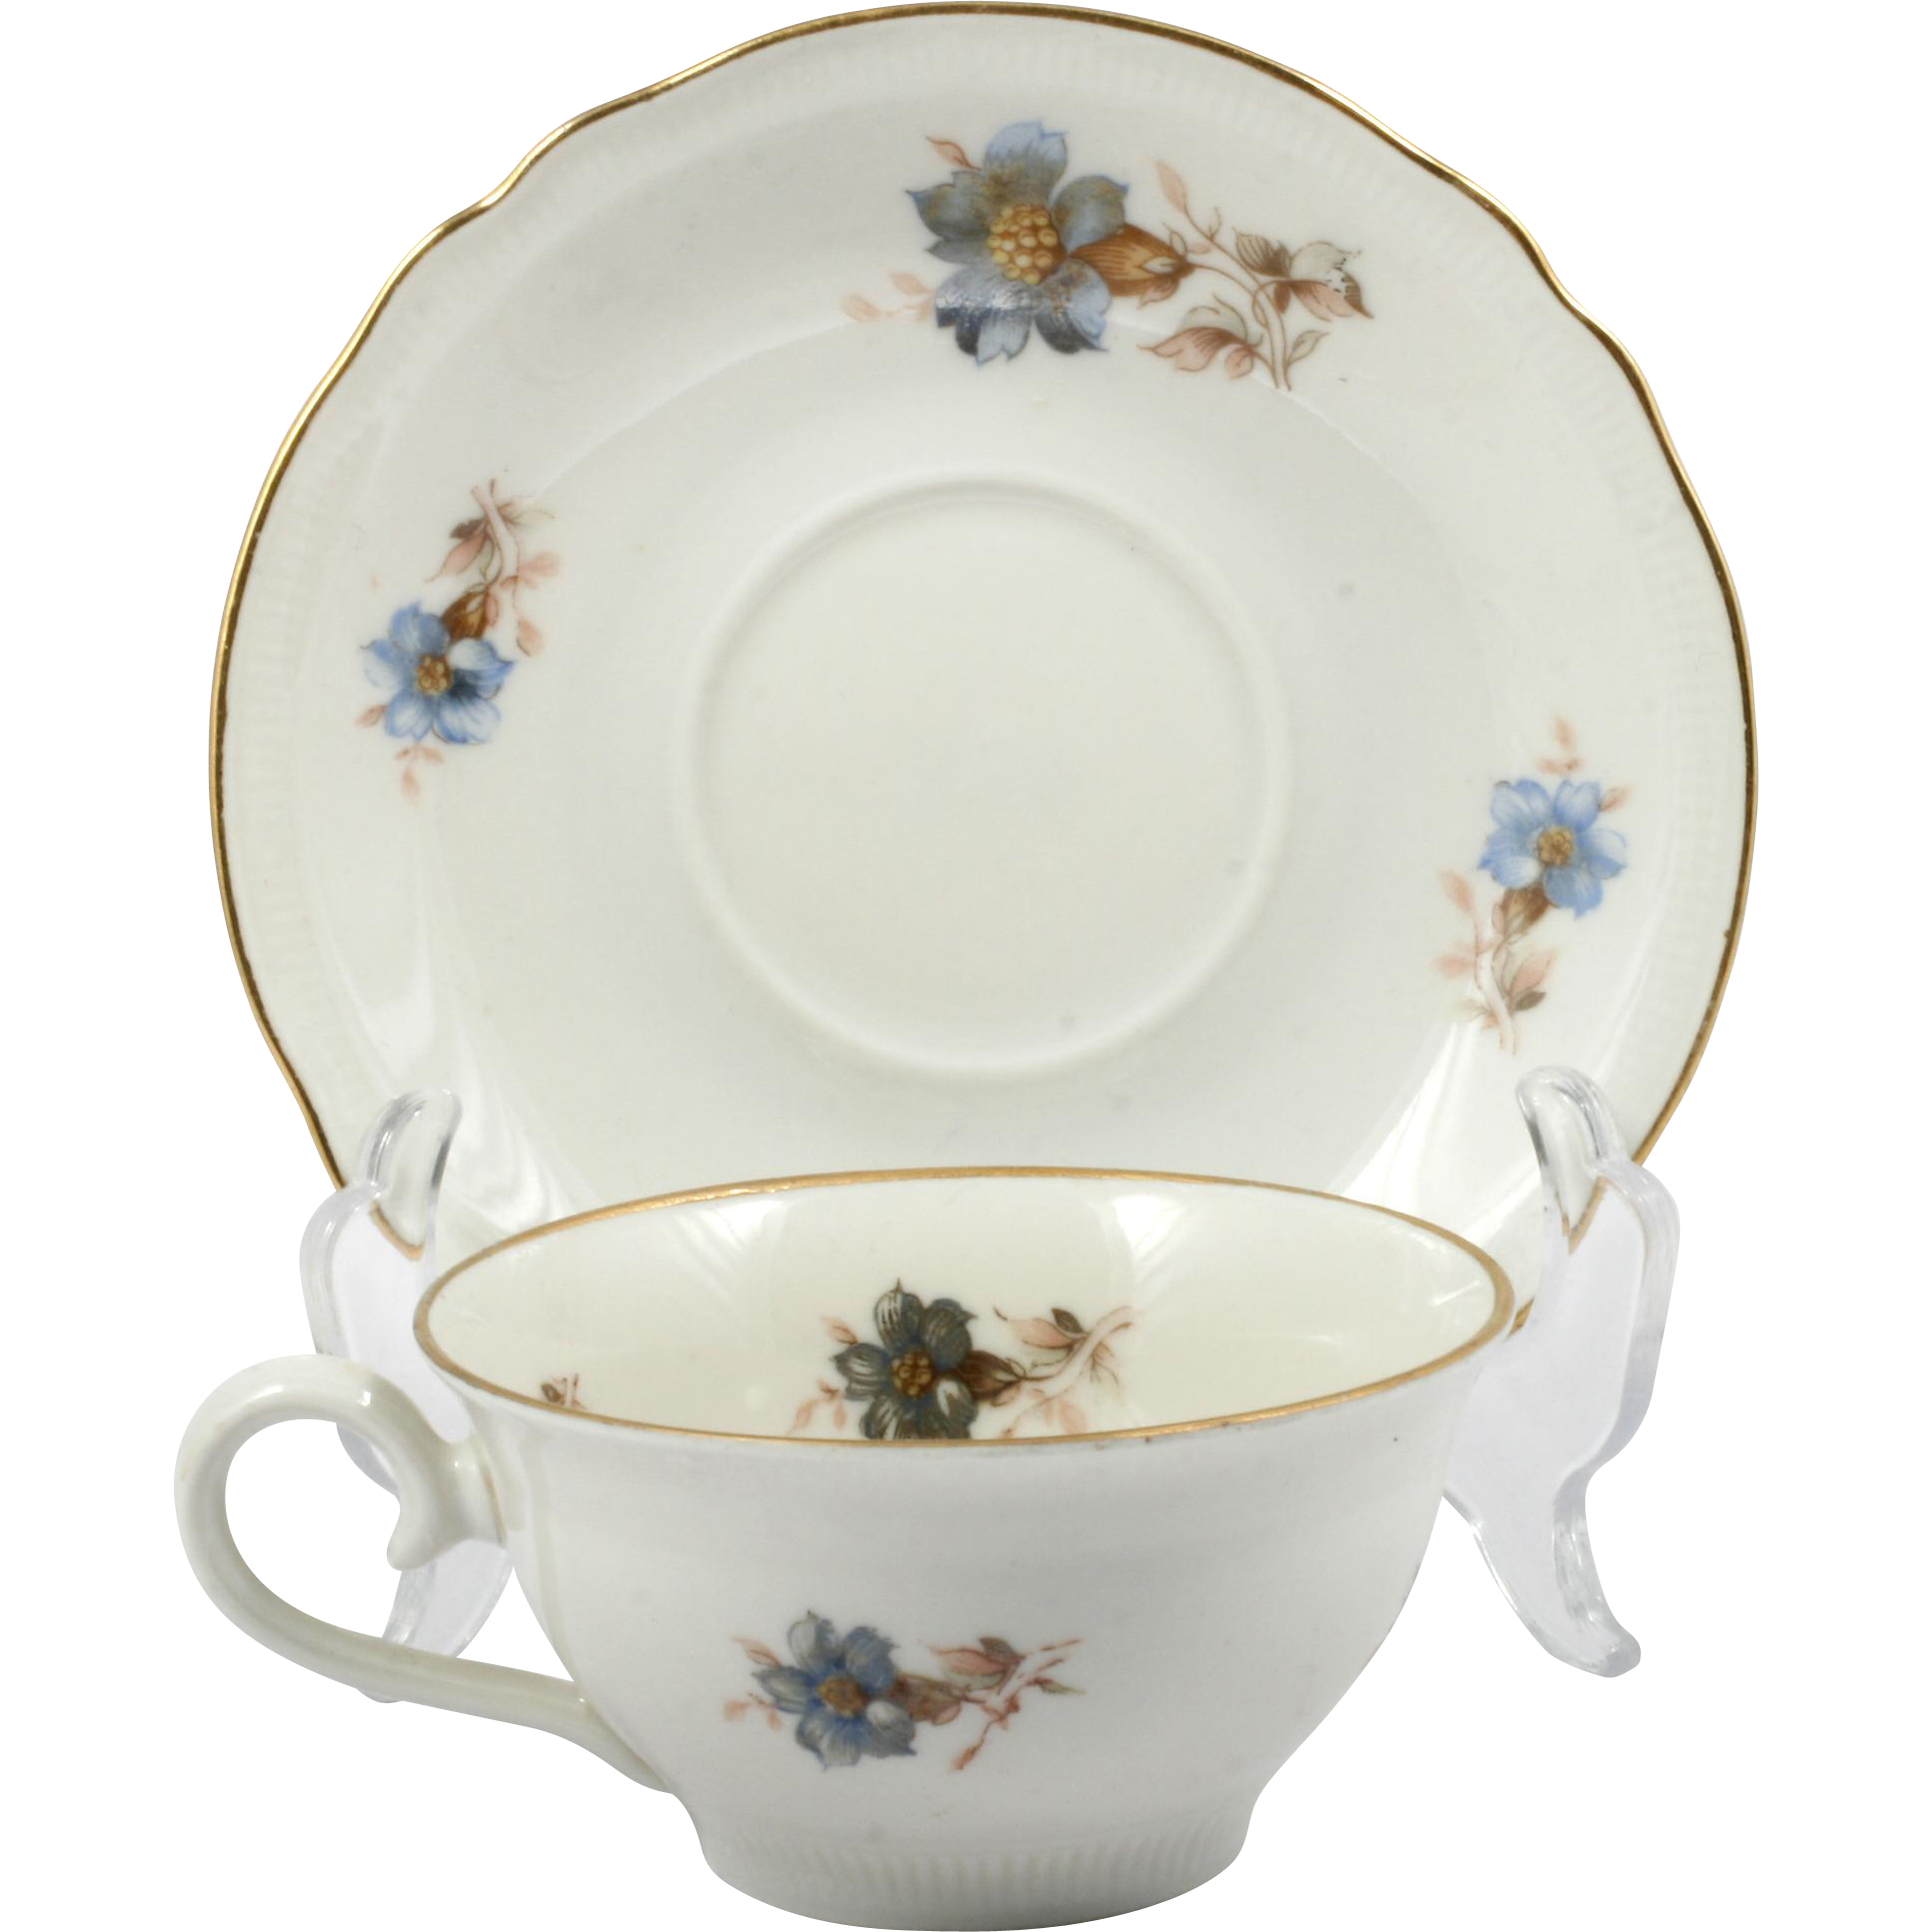 Schumann Bavaria Demitasse Cup and Saucer Blue Flowers with Silver Overlay German